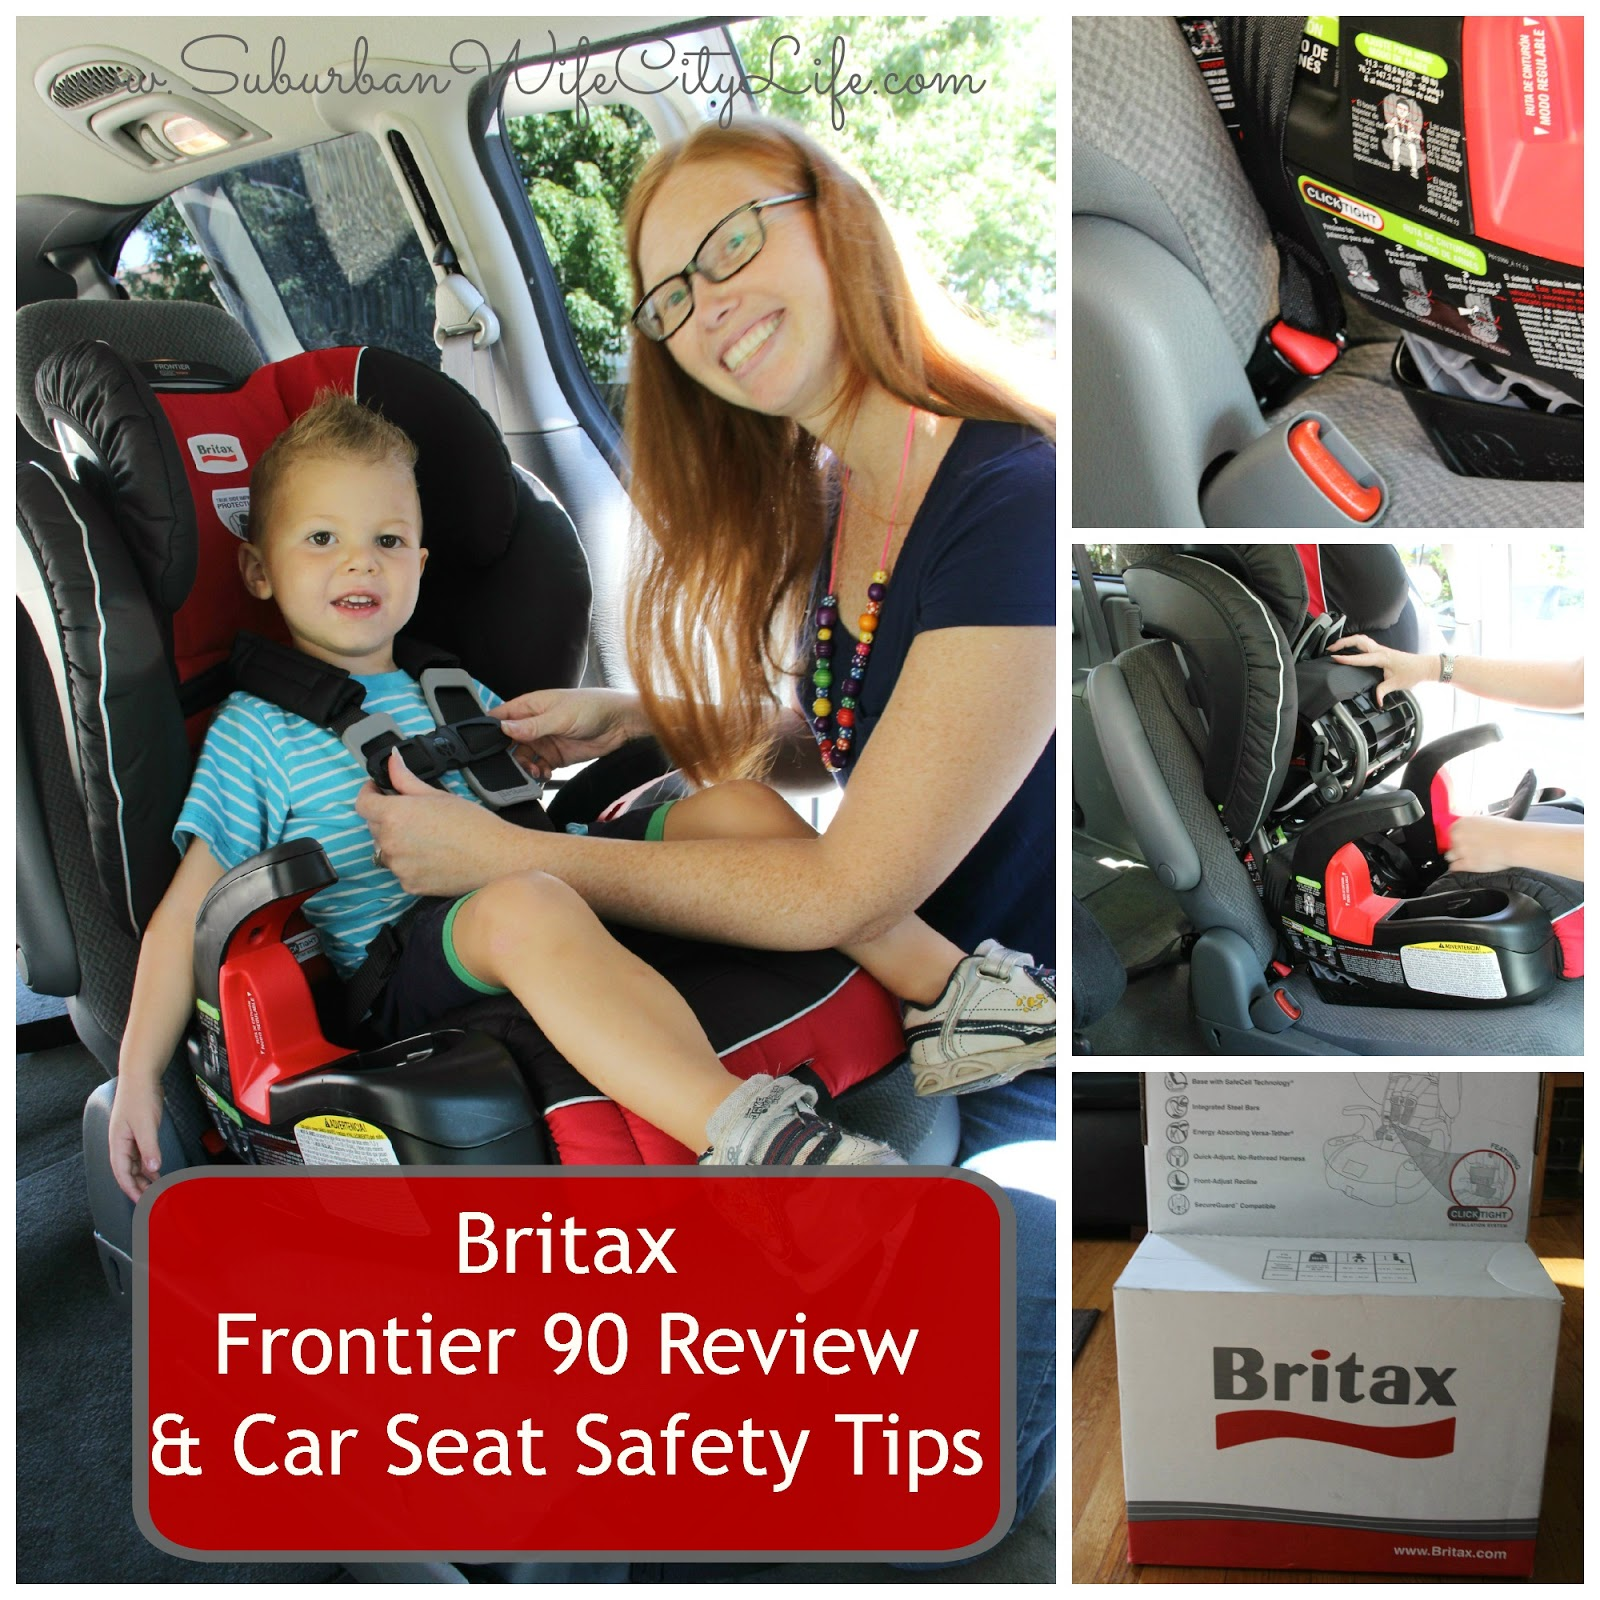 Before I Tell You About The Awesome Frontier 90 Want To Share A Little Education On Car Seats And Different Hows Whys They Can Expire From Britax